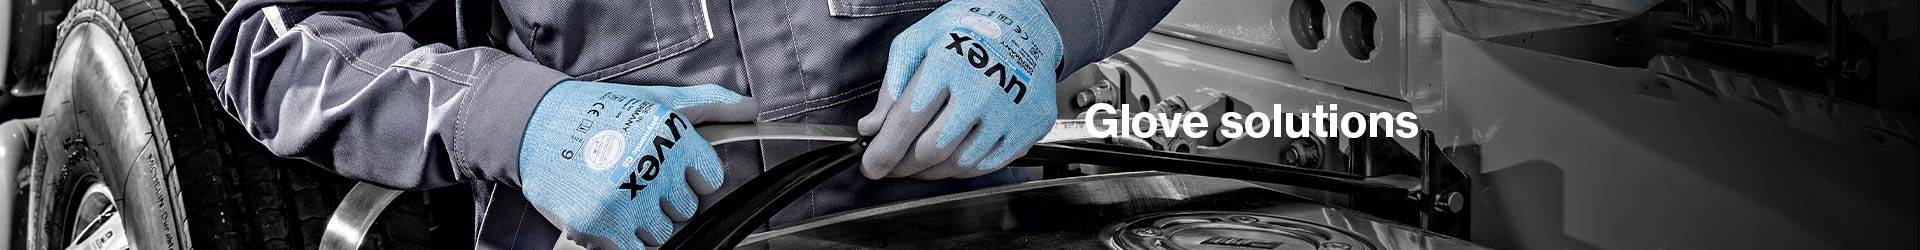 Cut protection safety gloves